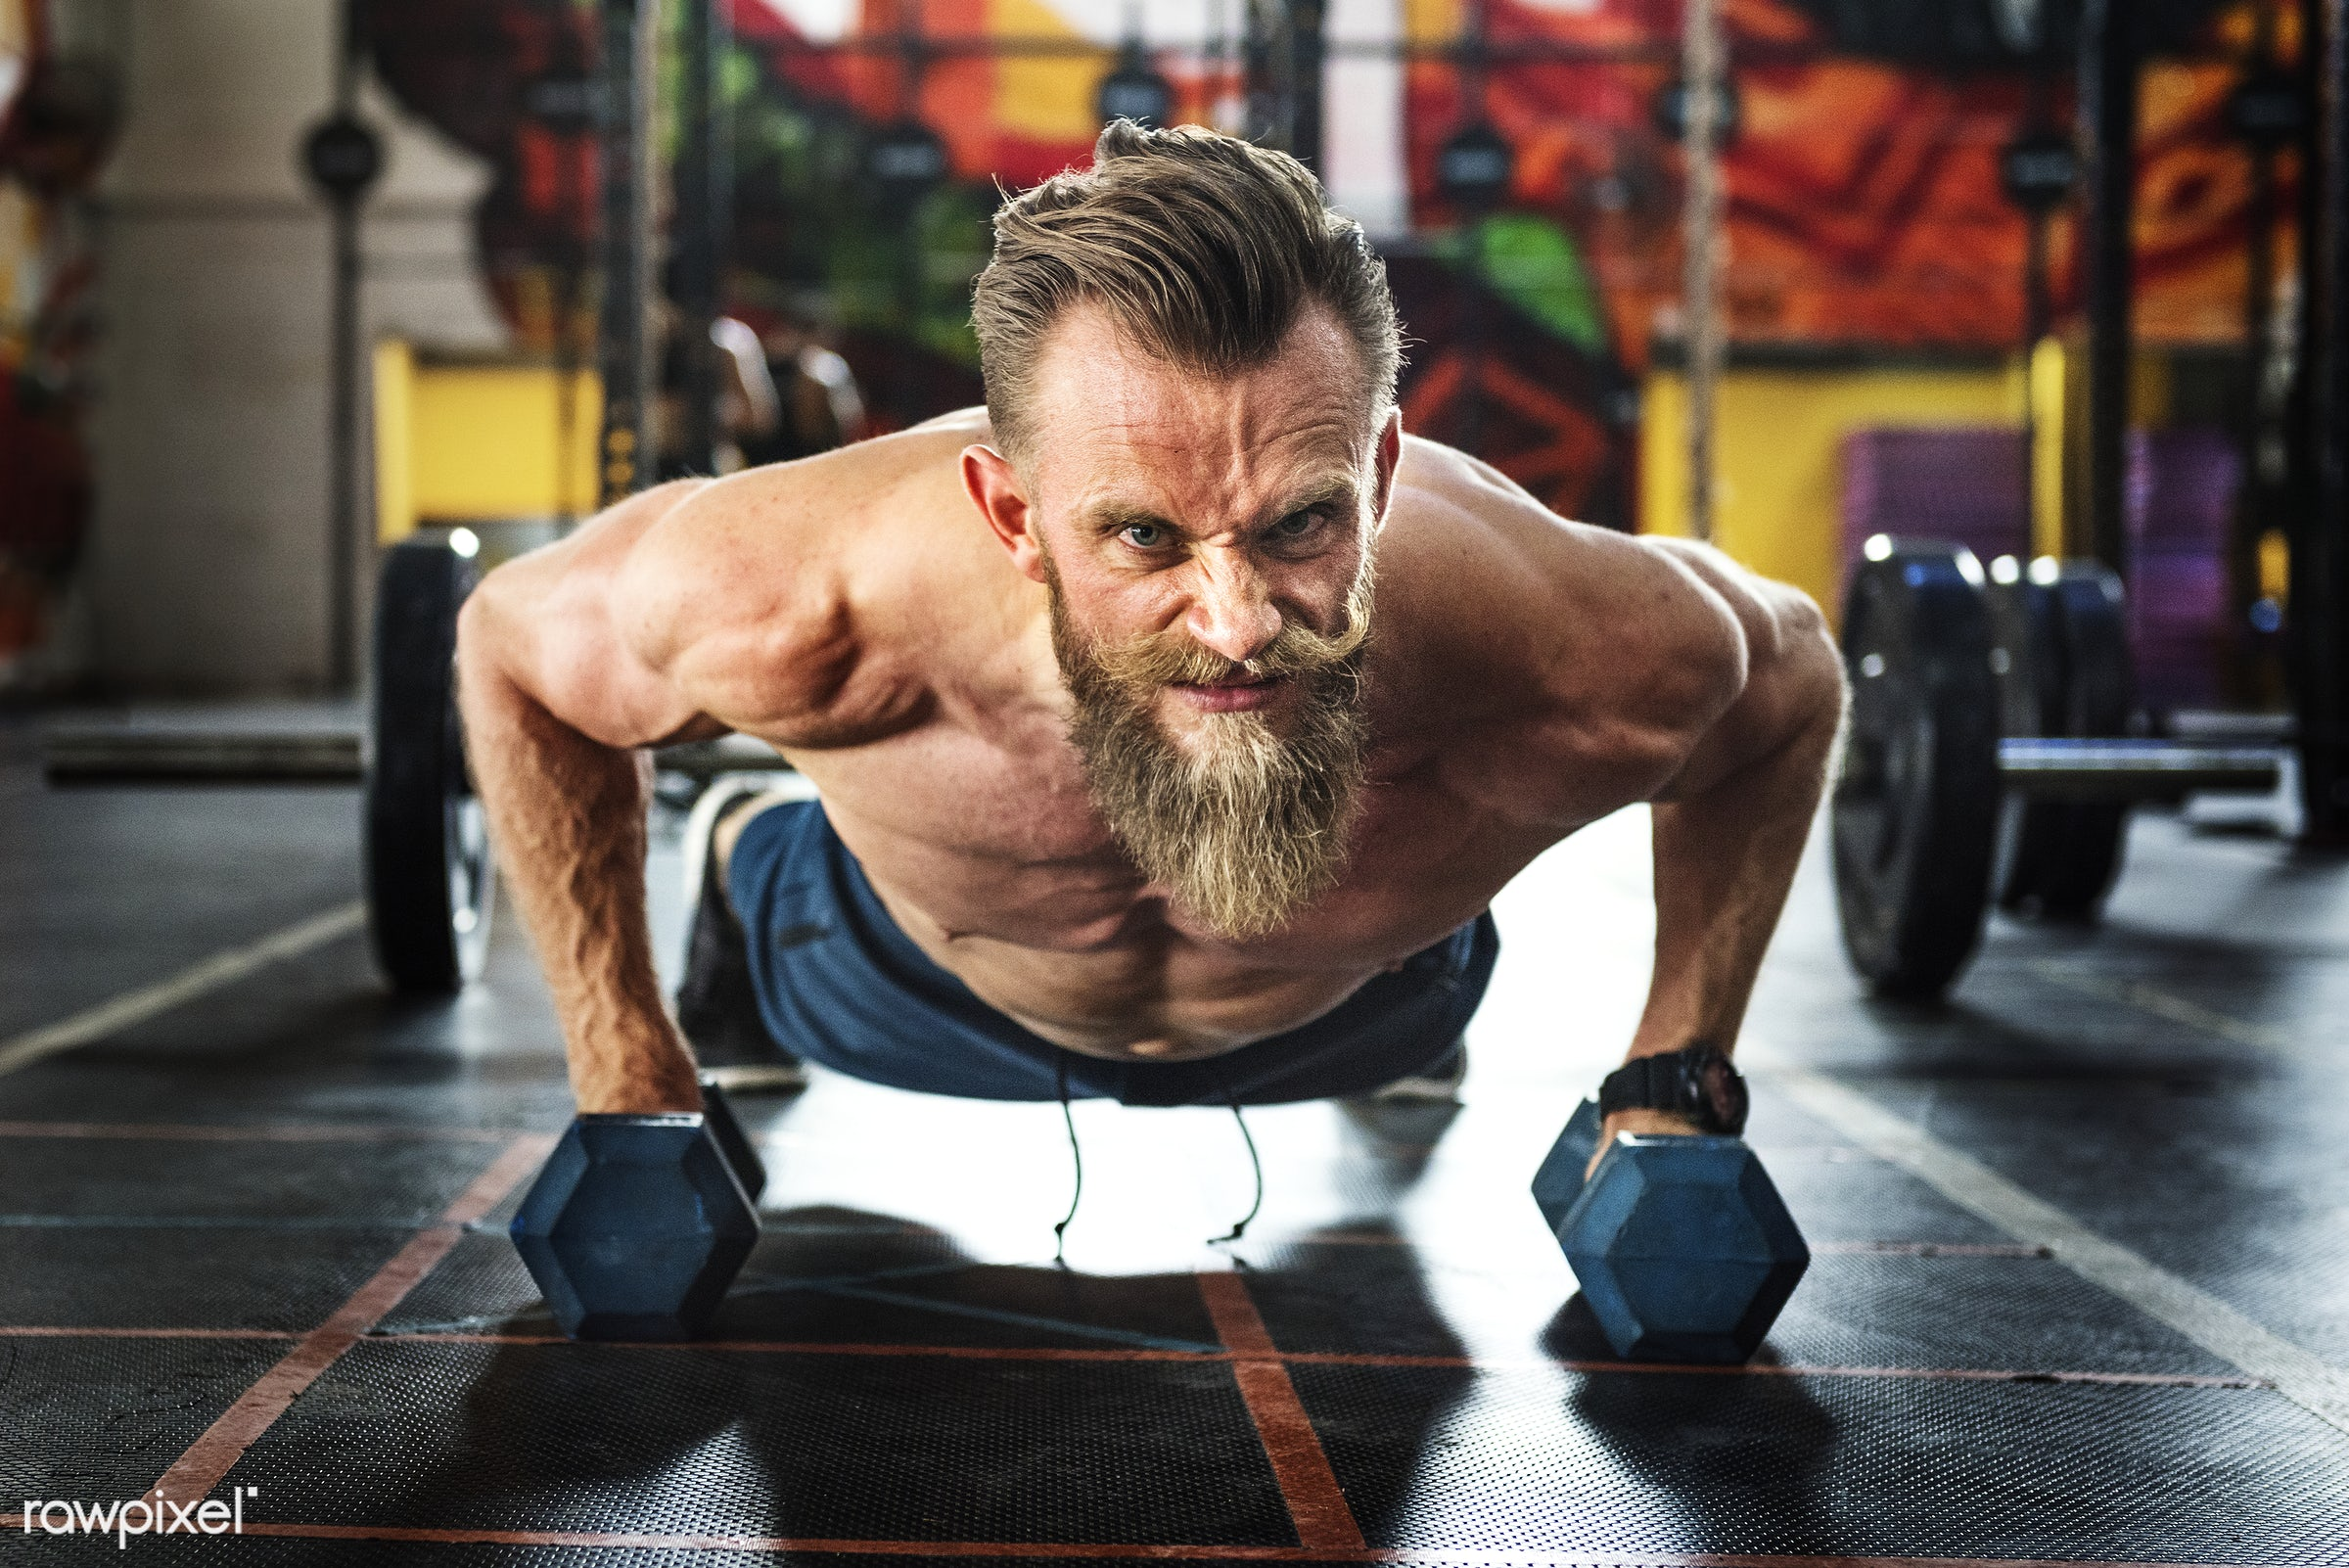 Bearded man at the gym - active, activity, athlete, athletic, beard, bearded, body, buff, crossfit, dumbbells, equipment,...